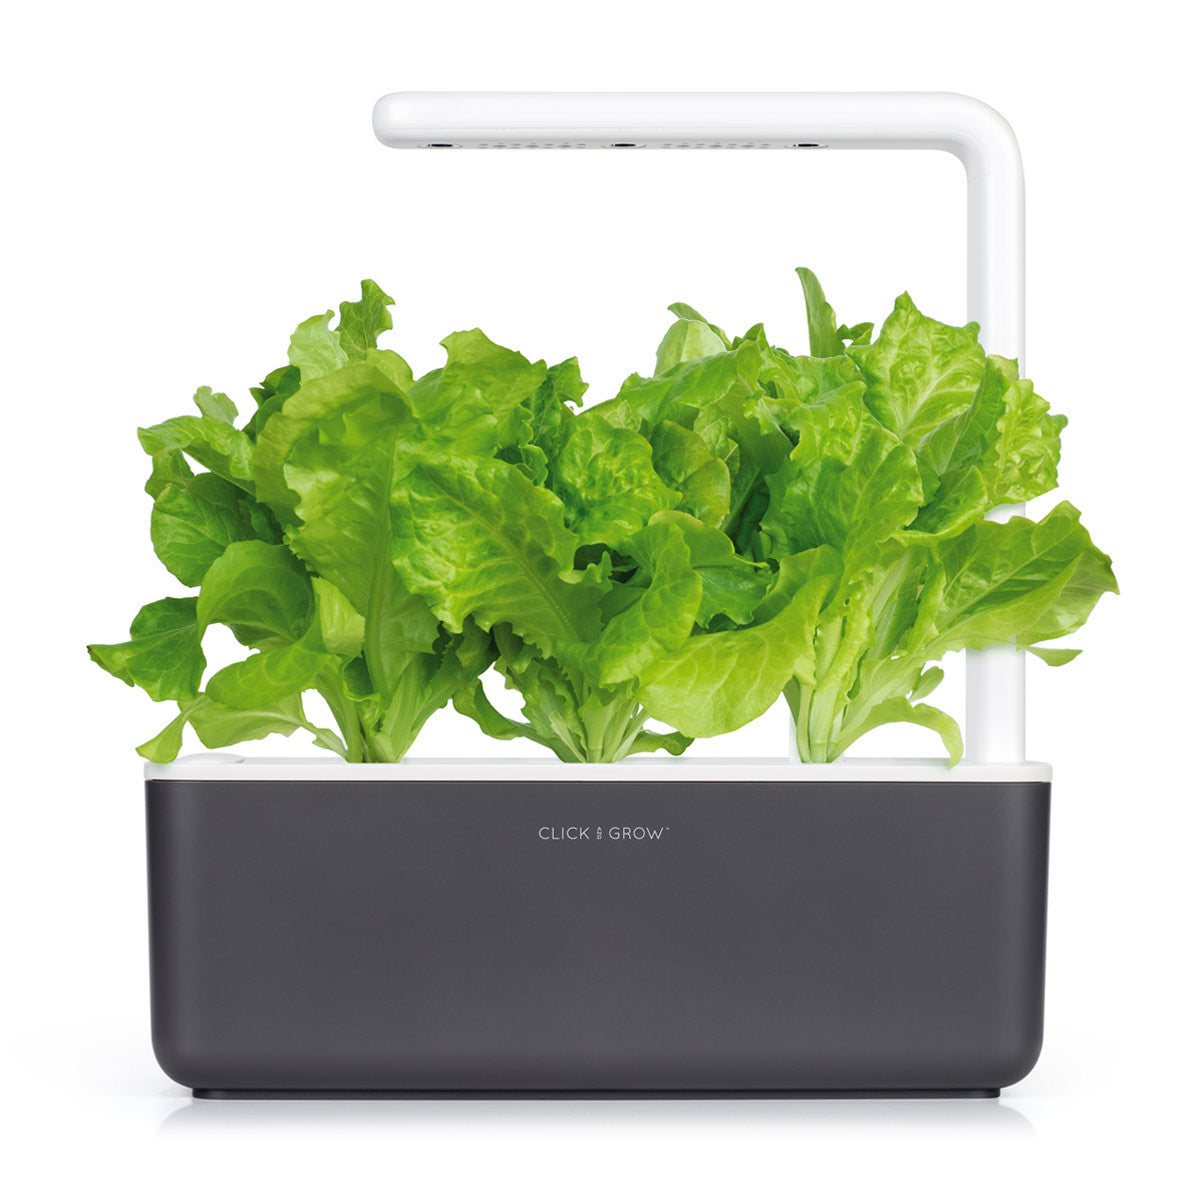 Grow lettuce indoors with an Indoor Herb Garden. Click & Grow